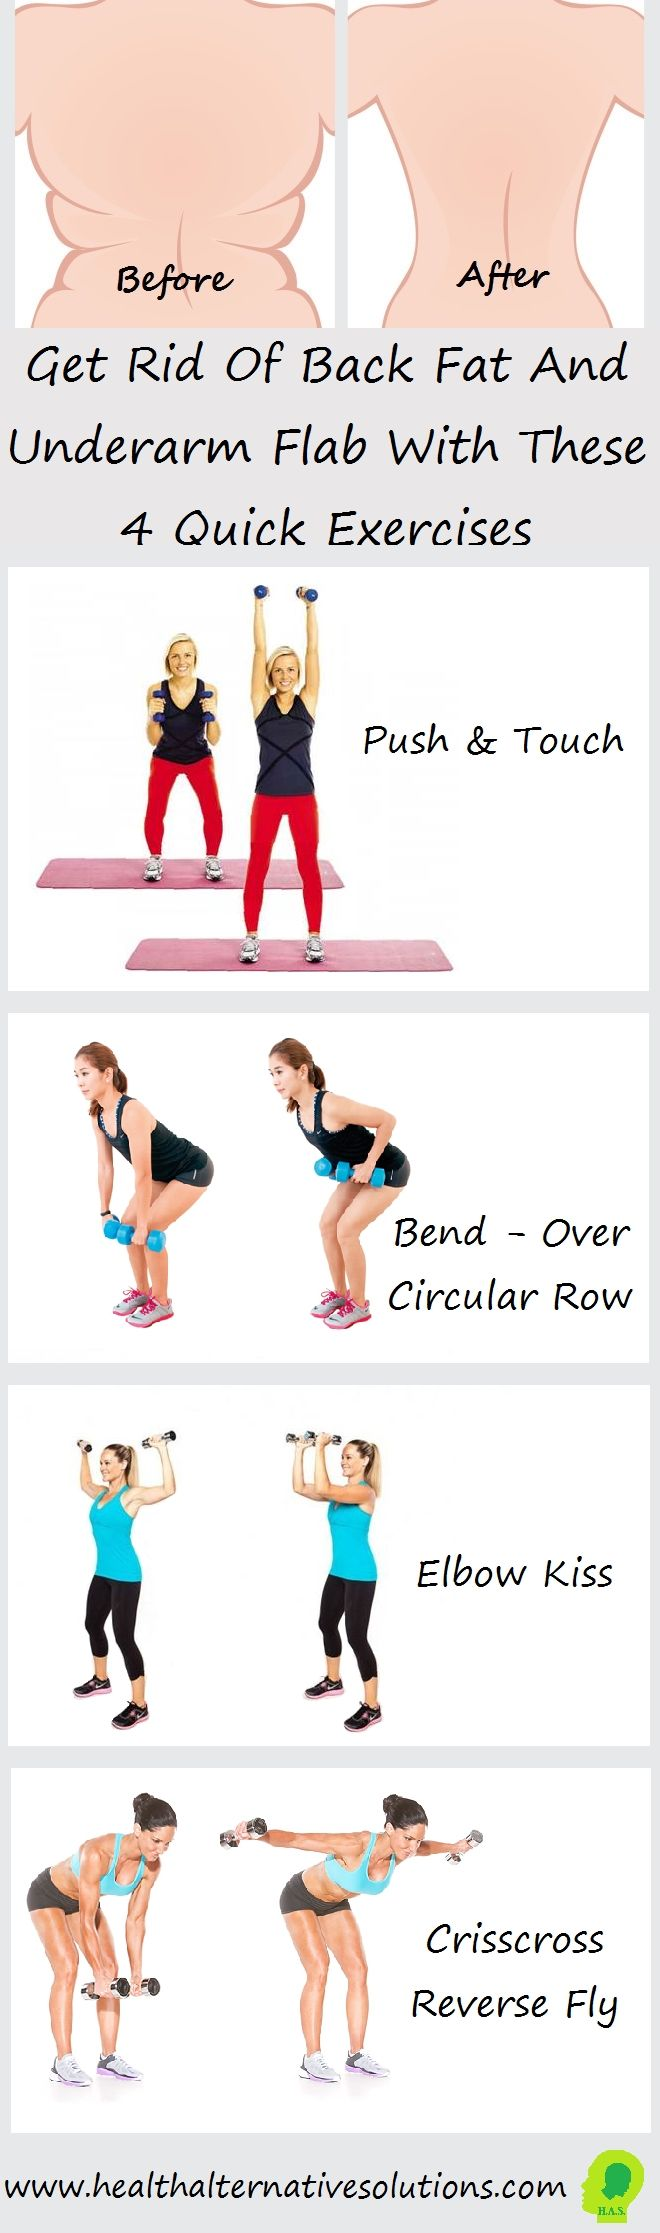 You can combine these exercises with a cardio workout and include targeted strength moves. #totalbodytransformation